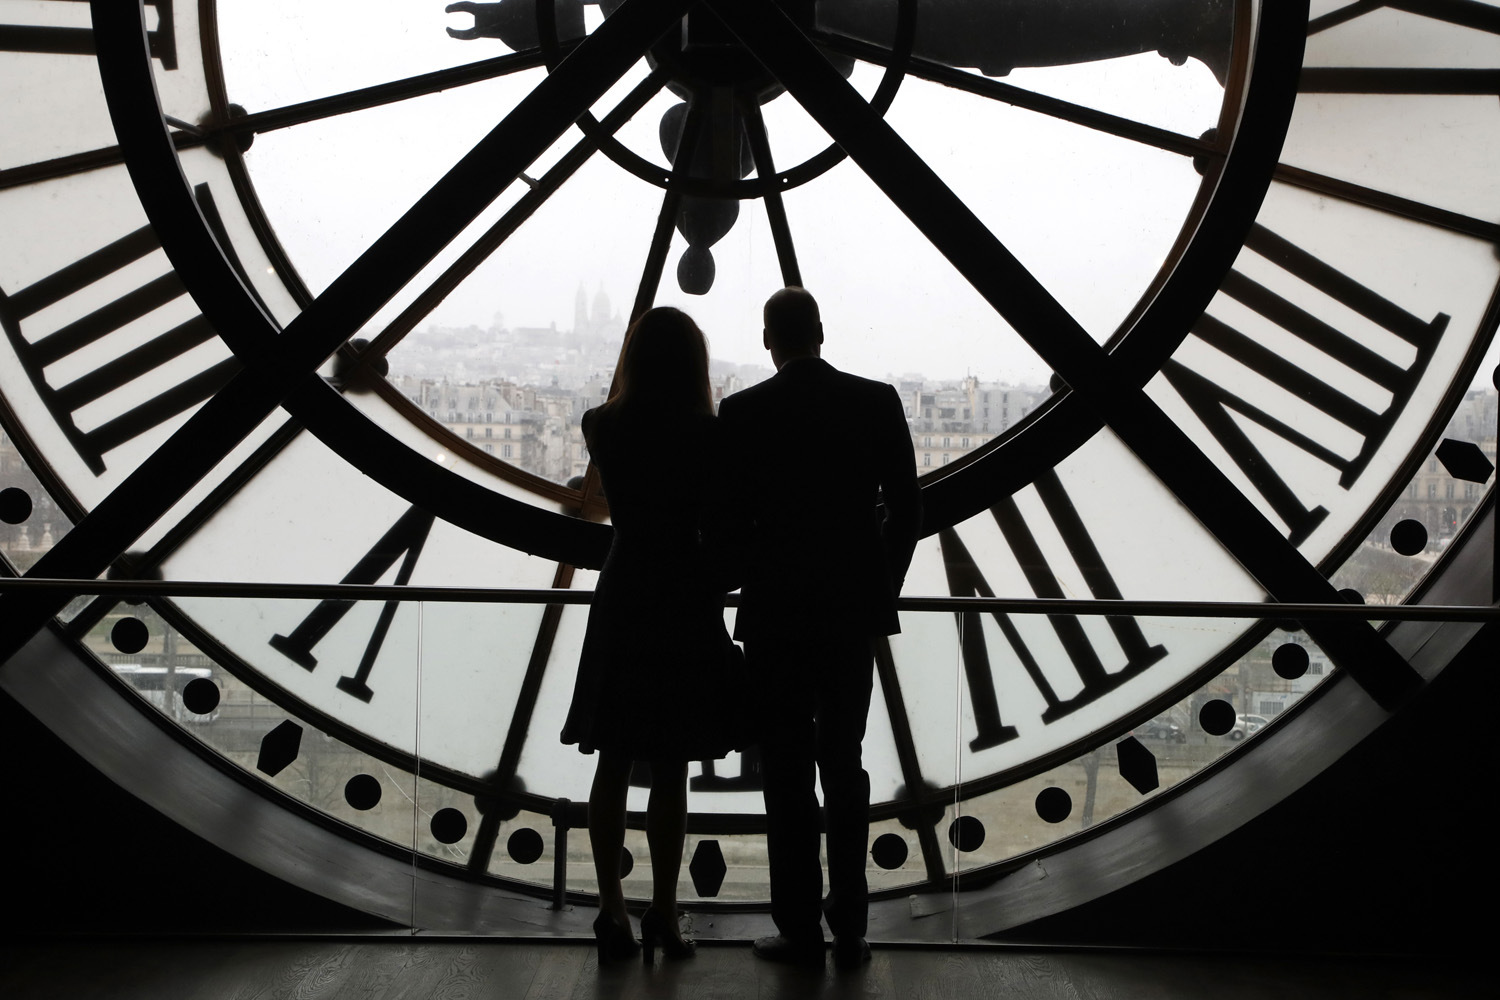 Britain's Prince William, Duke of Cambridge, and his wife Britain's Kate, Duchess of Cambridge, are silhouetted as they look the Seine river through a giant clock at the Musee d'Orsay museum -the former Gare d'Orsay train station- during their visit to the museum, Saturday, March 18, 2017, on the second day of their two-day visit to the French capital. (Francois Guillot/Pool Photo via AP)